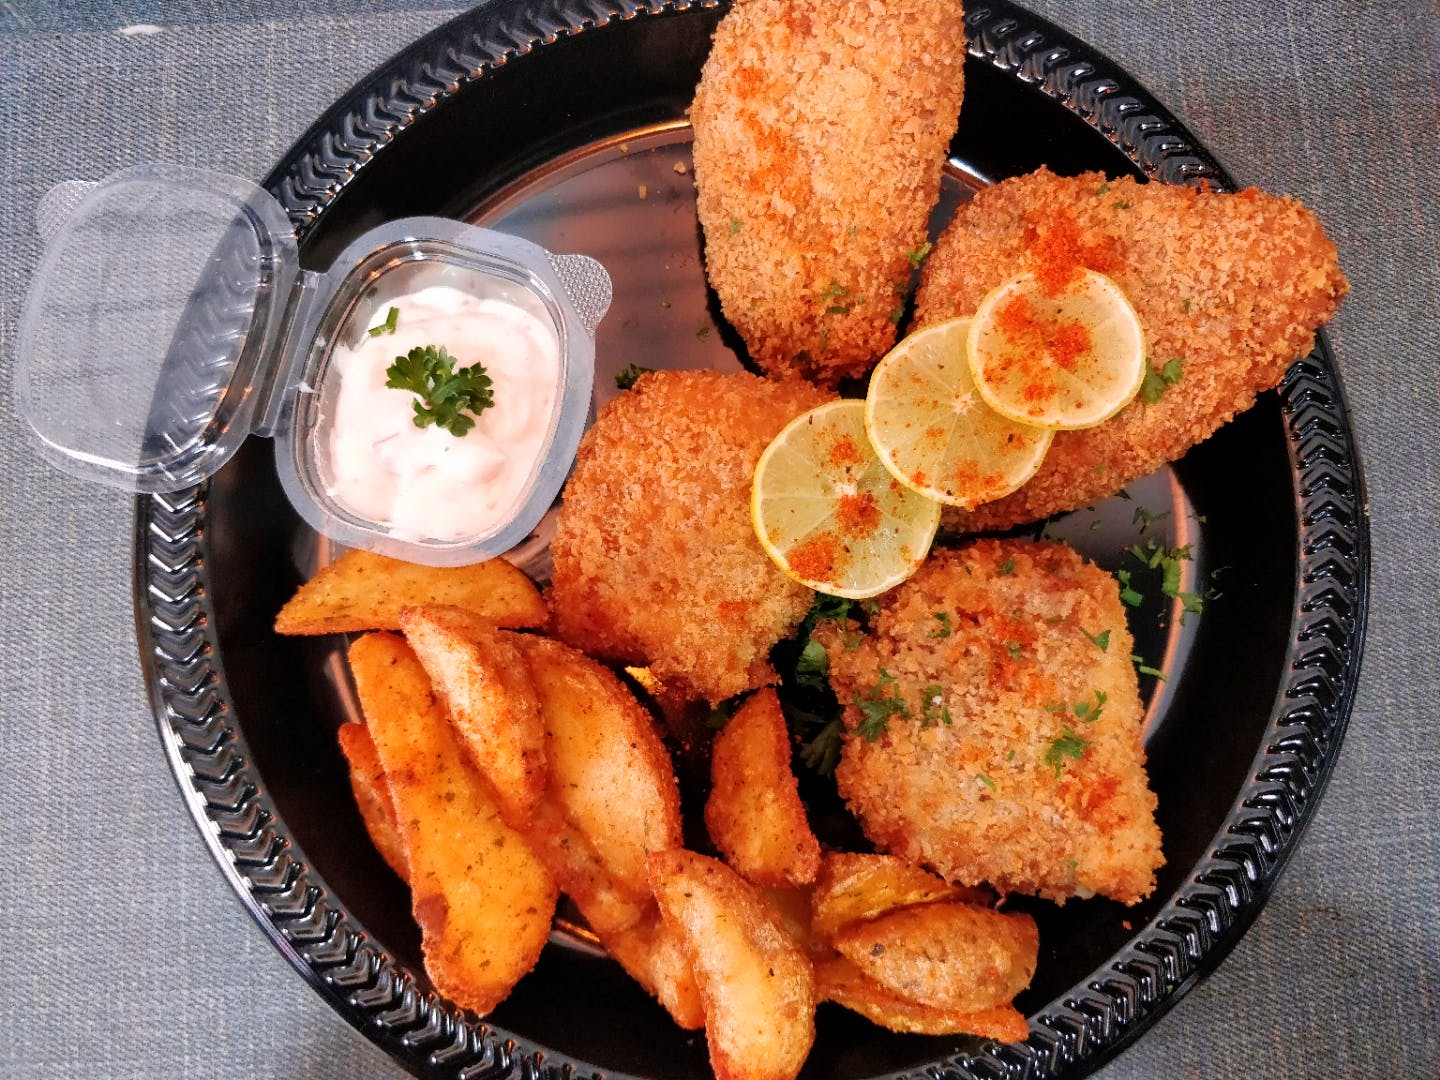 Dish,Food,Cuisine,Fried food,Deep frying,Ingredient,Fritter,Produce,Staple food,Tzatziki